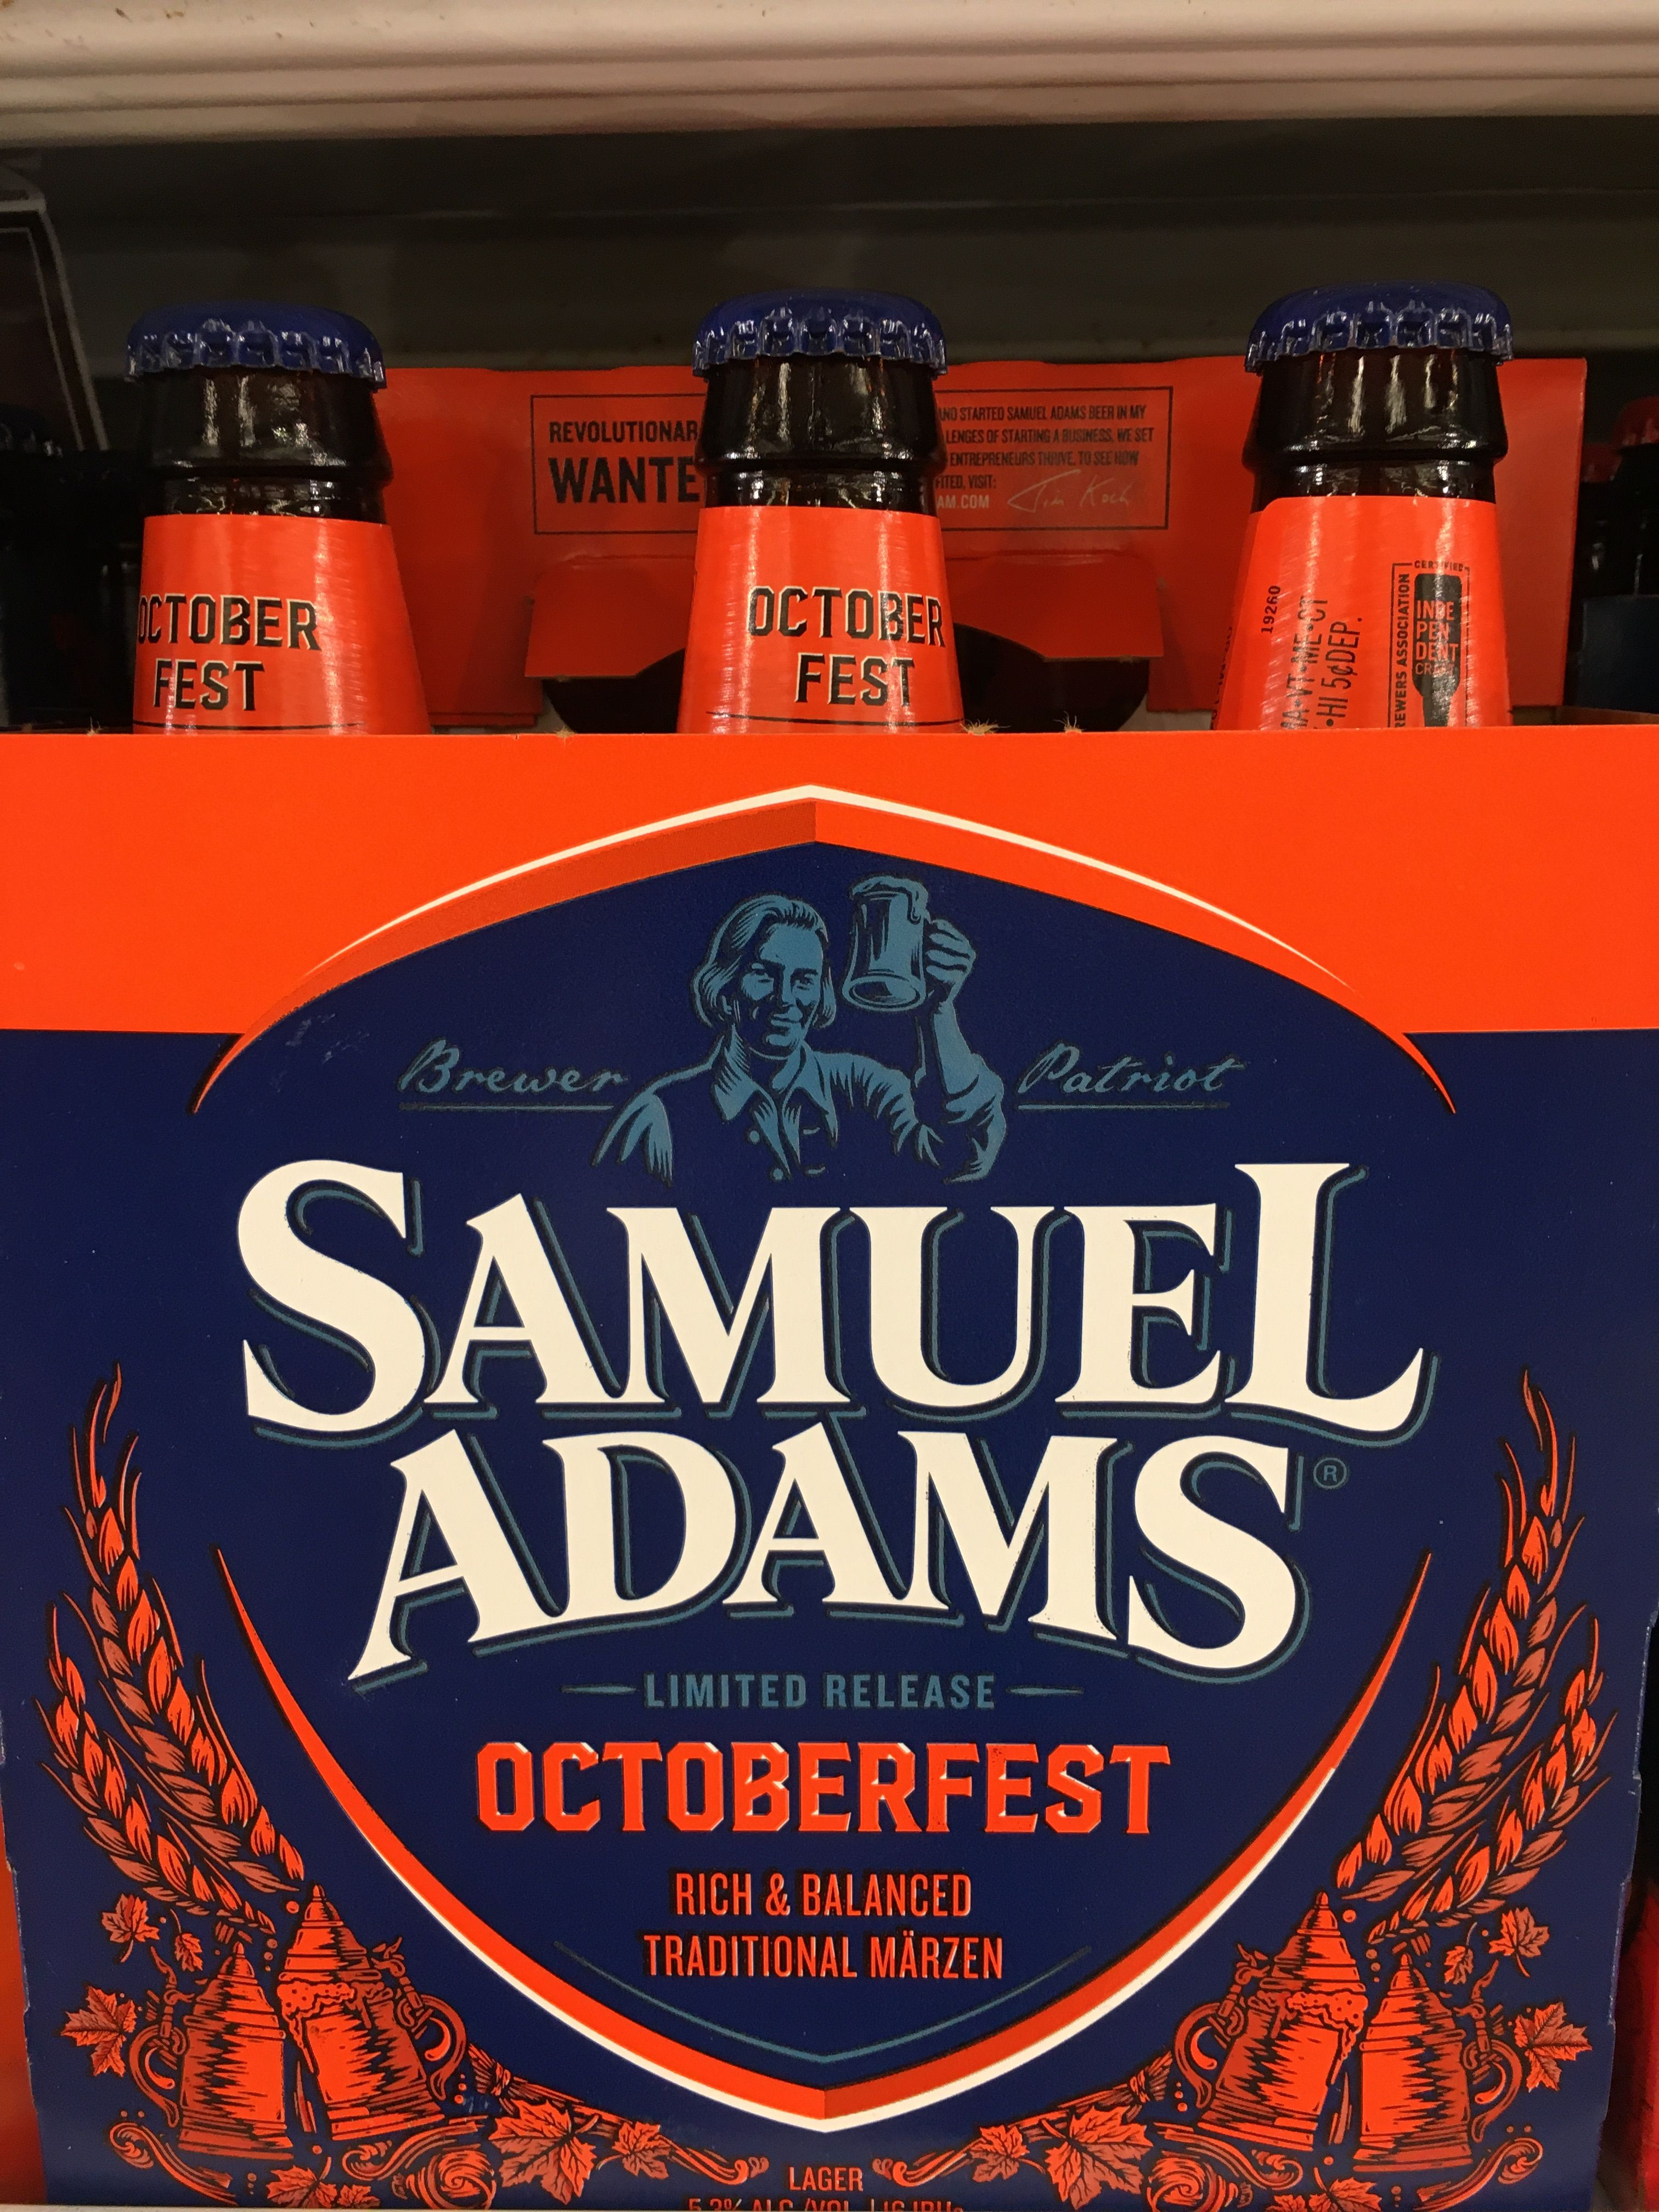 Pin By Rick Kriss On Beers In 2020 Octoberfest Lager Beer